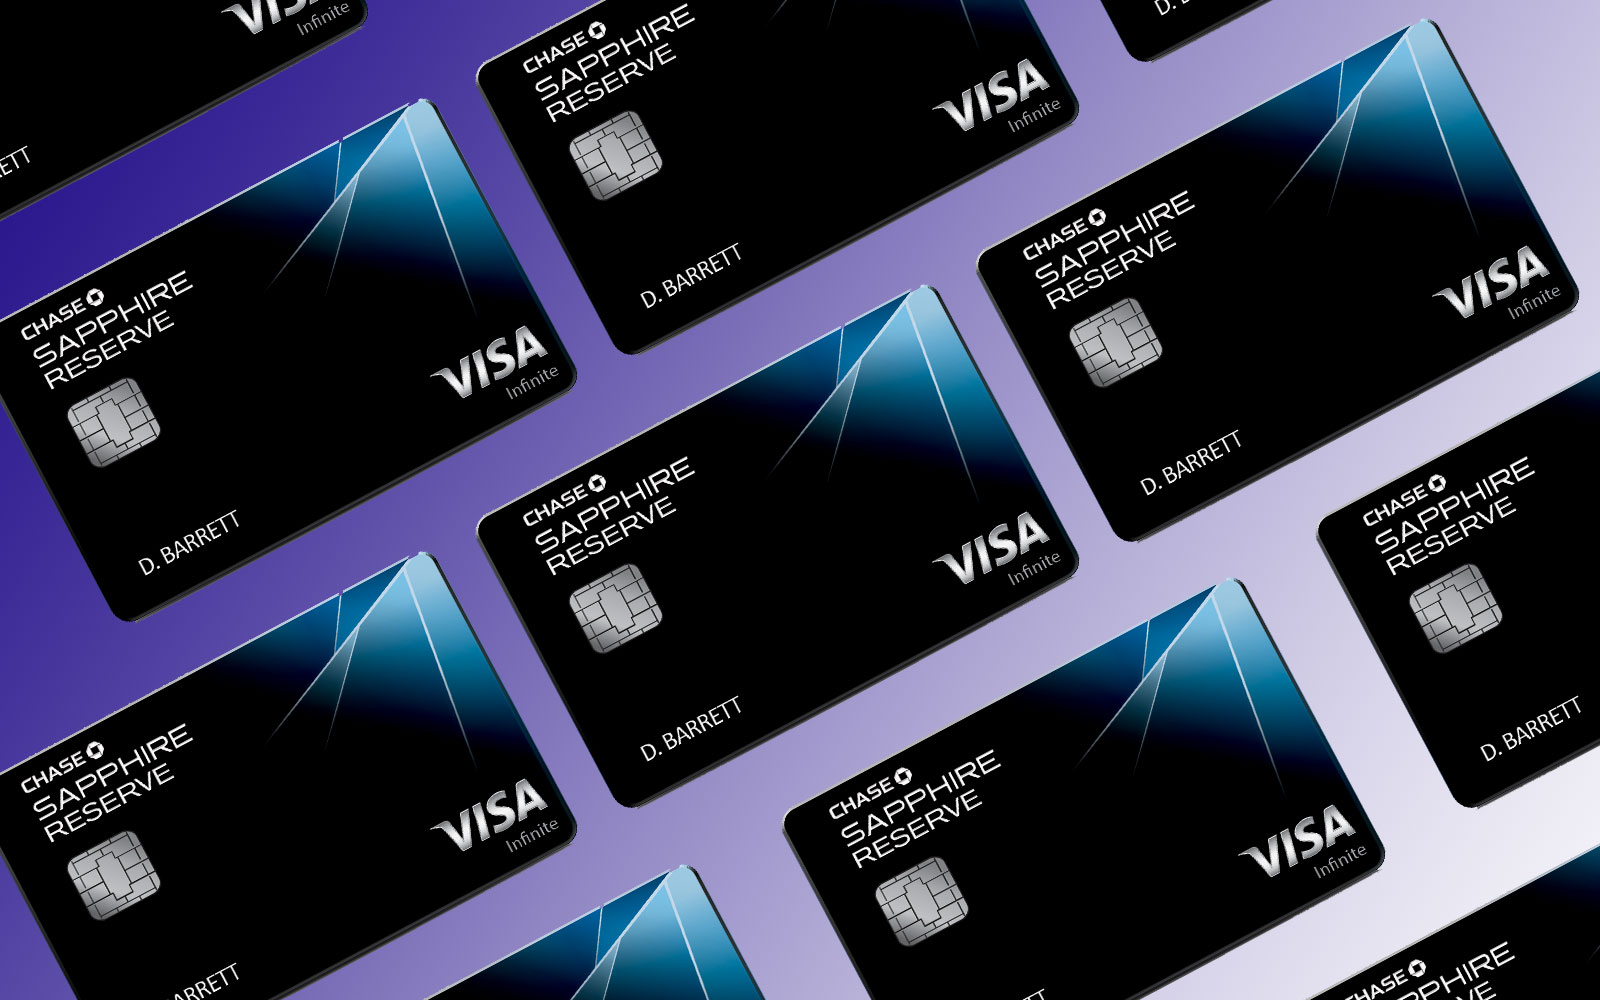 It's Your Last Chance To Get 100,000 Bonus Points From Chase Sapphire Reserve Credit Card